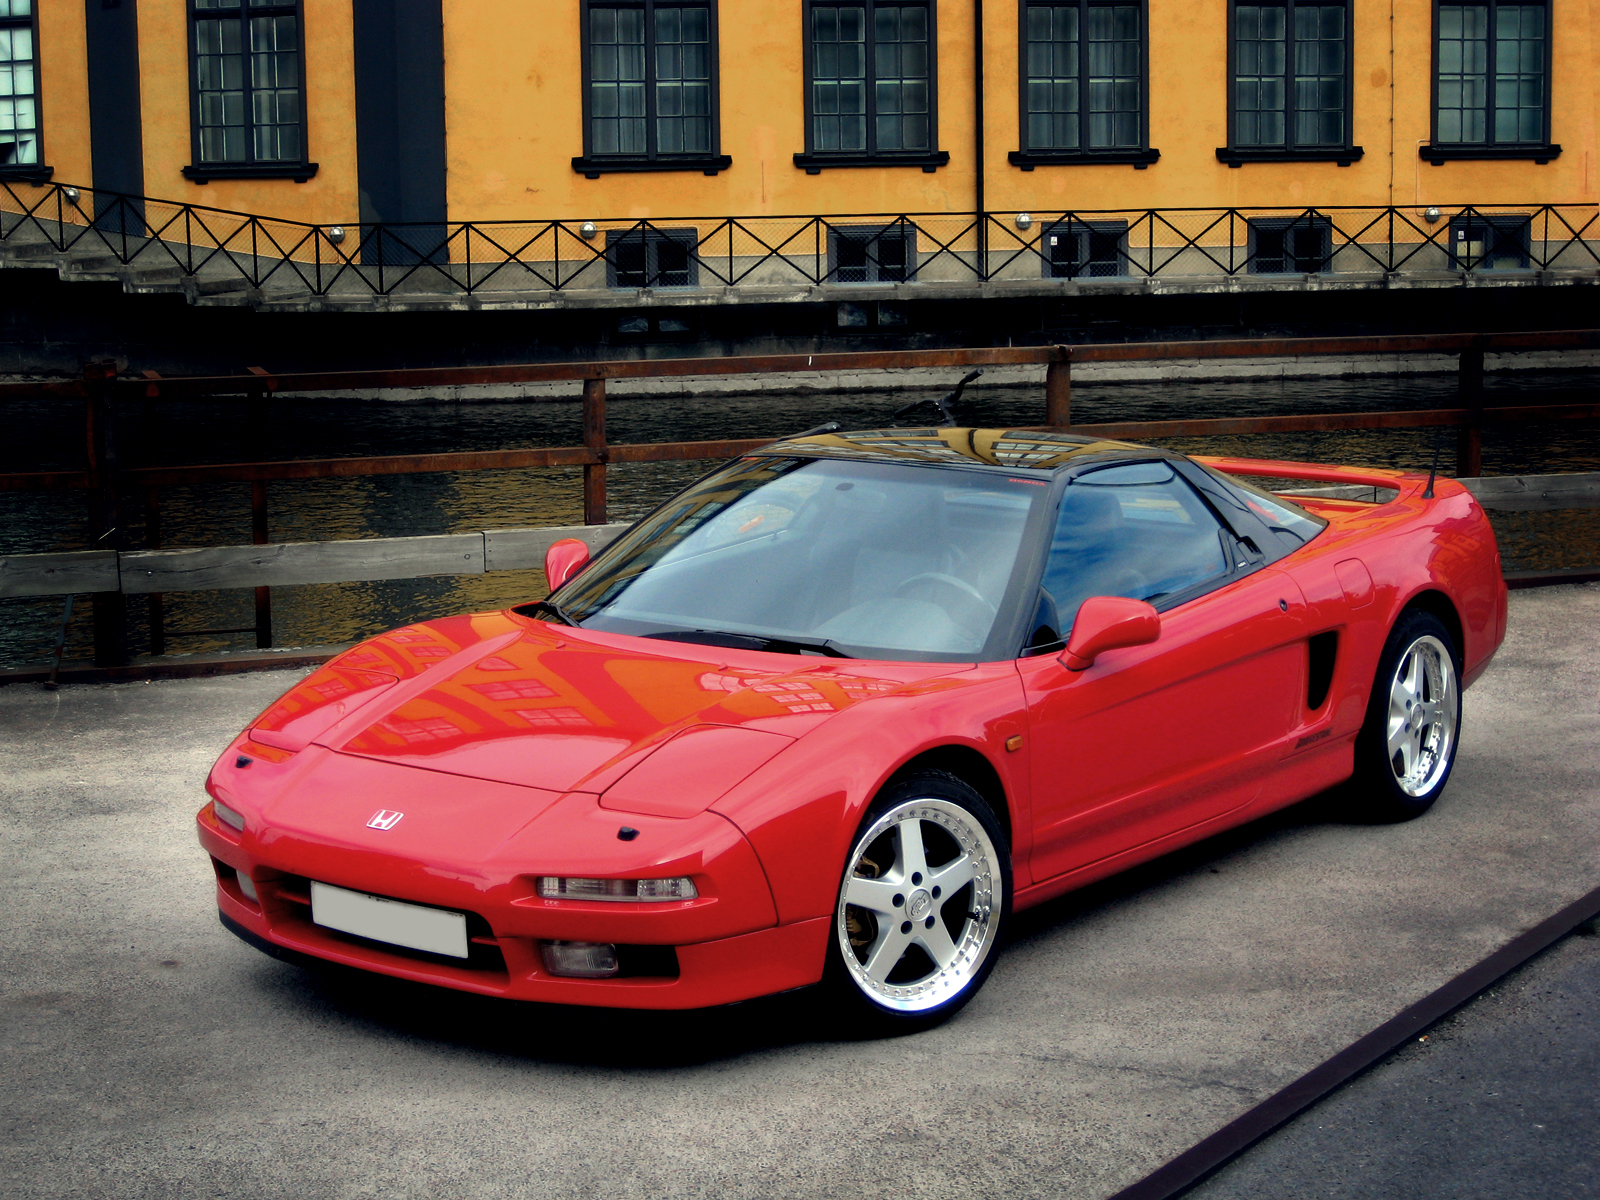 3dtuning of honda nsx coupe 1990 3dtuning     unique on line car configurator for more than